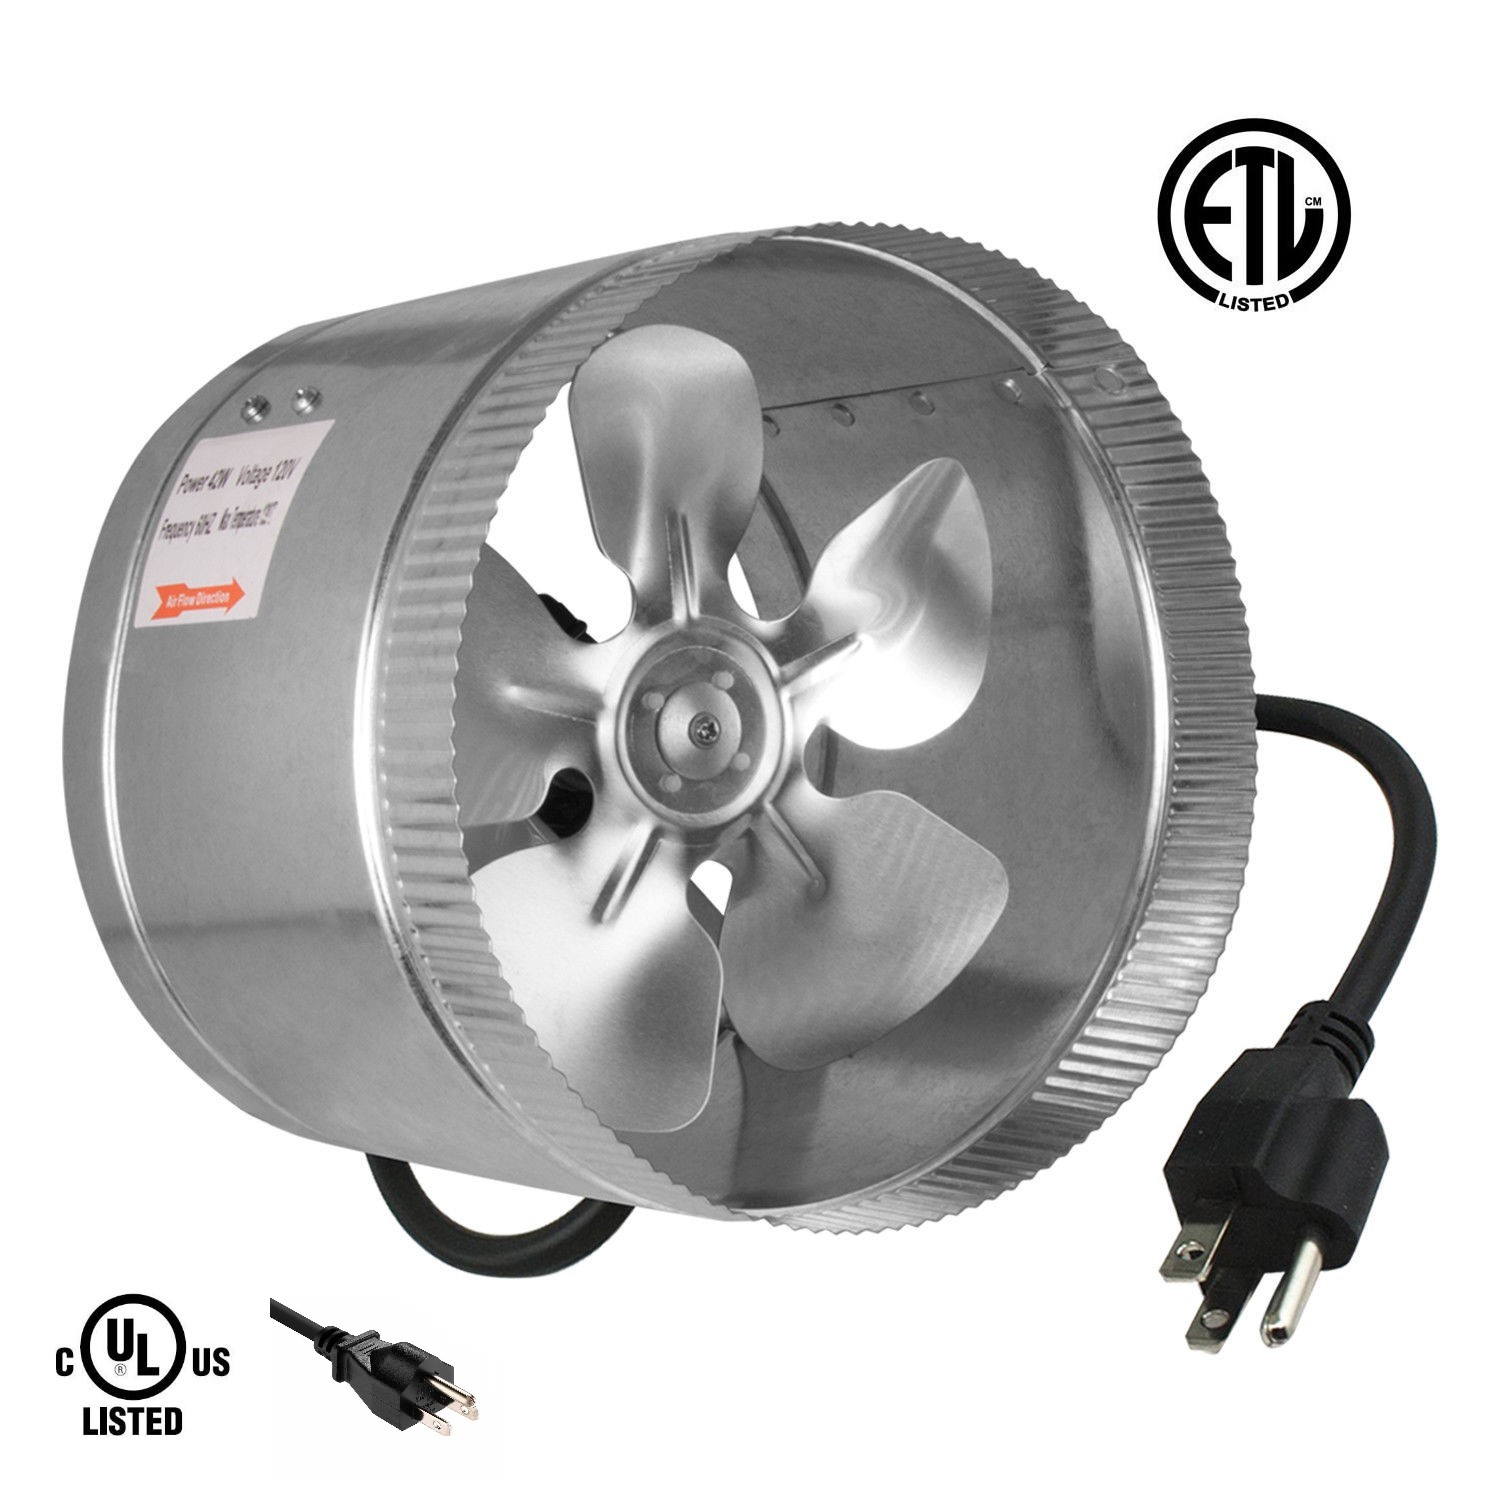 ipower 8 420 cfm booster fan inline duct vent blower for hvac exhaust and intake 5 5 grounded power cord walmart com